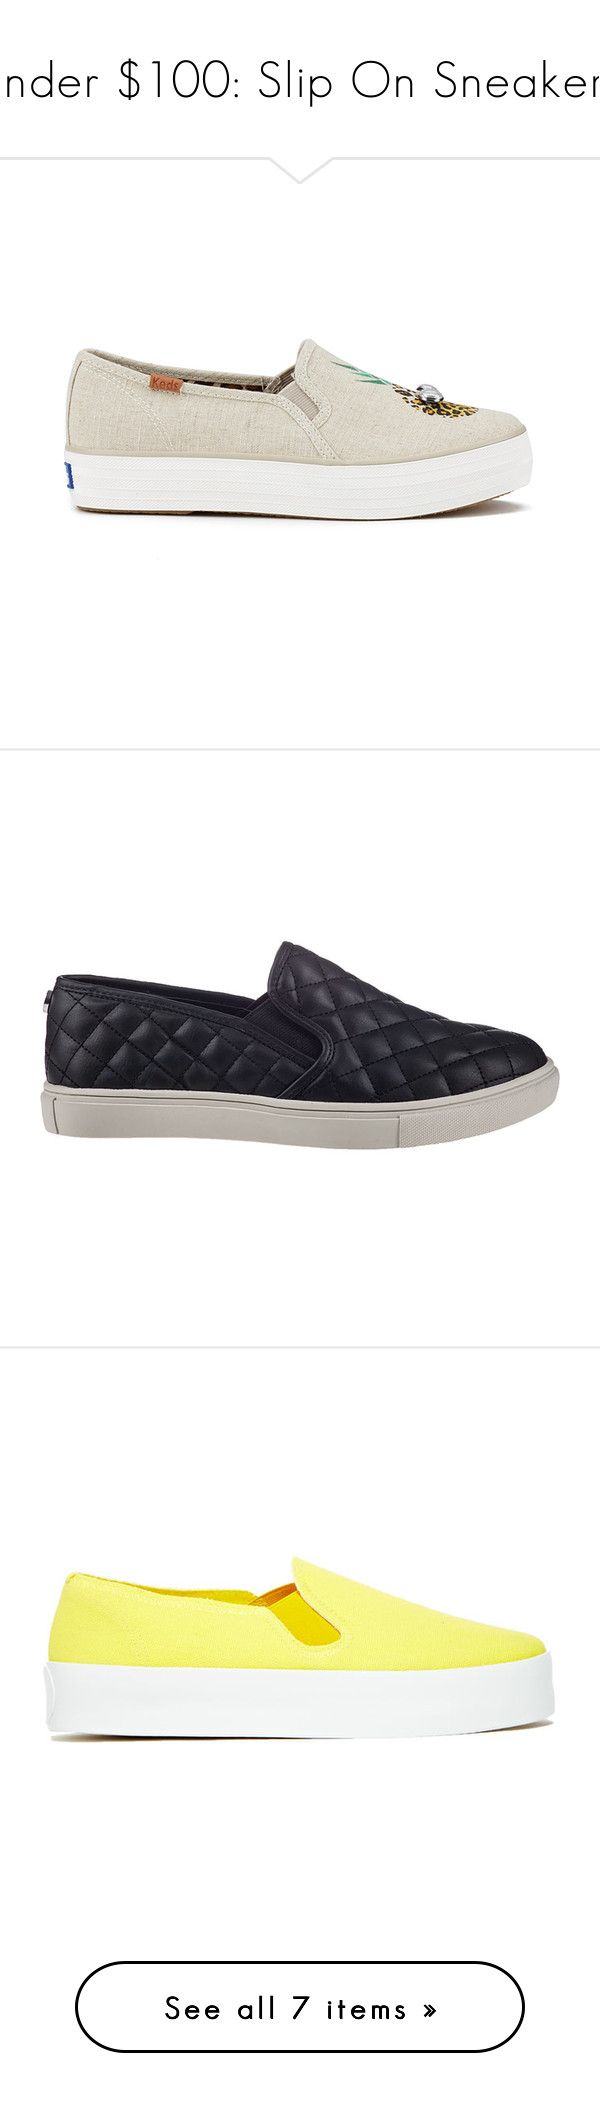 """Under $100: Slip On Sneakers"" by polyvore-editorial ❤ liked on Polyvore featuring under100, sliponsneakers, Keds, Steve Madden, Vans, Our Family, Opening Ceremony, shoes, sneakers and beige"